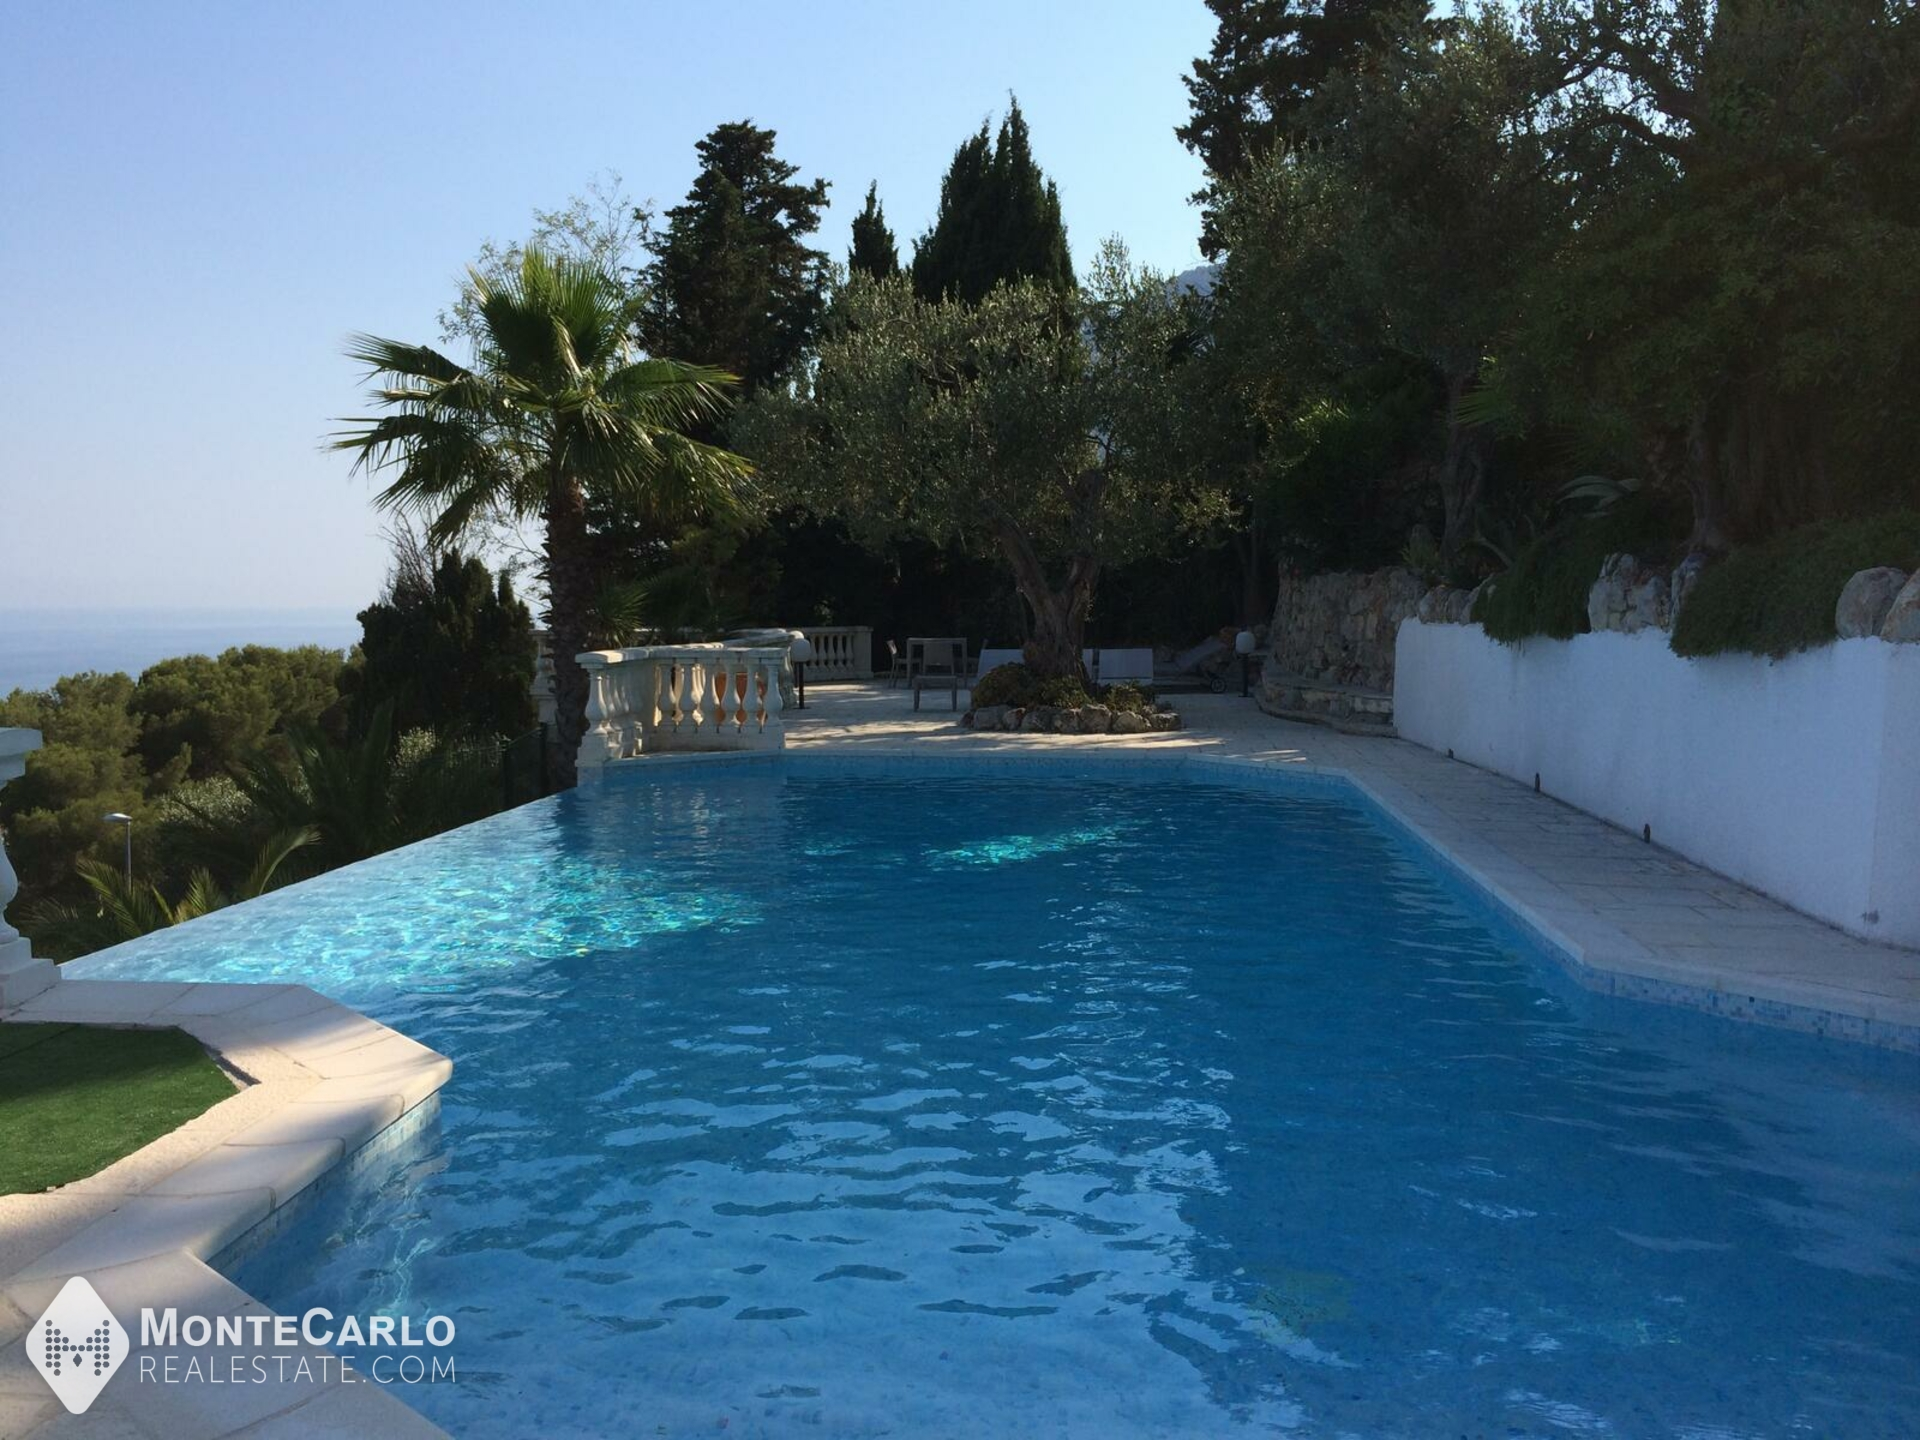 For sale Beausoleil - Apartment / 5 rooms : 1 570 000 € | Monte-Carlo Real Estate [VF0920-90]